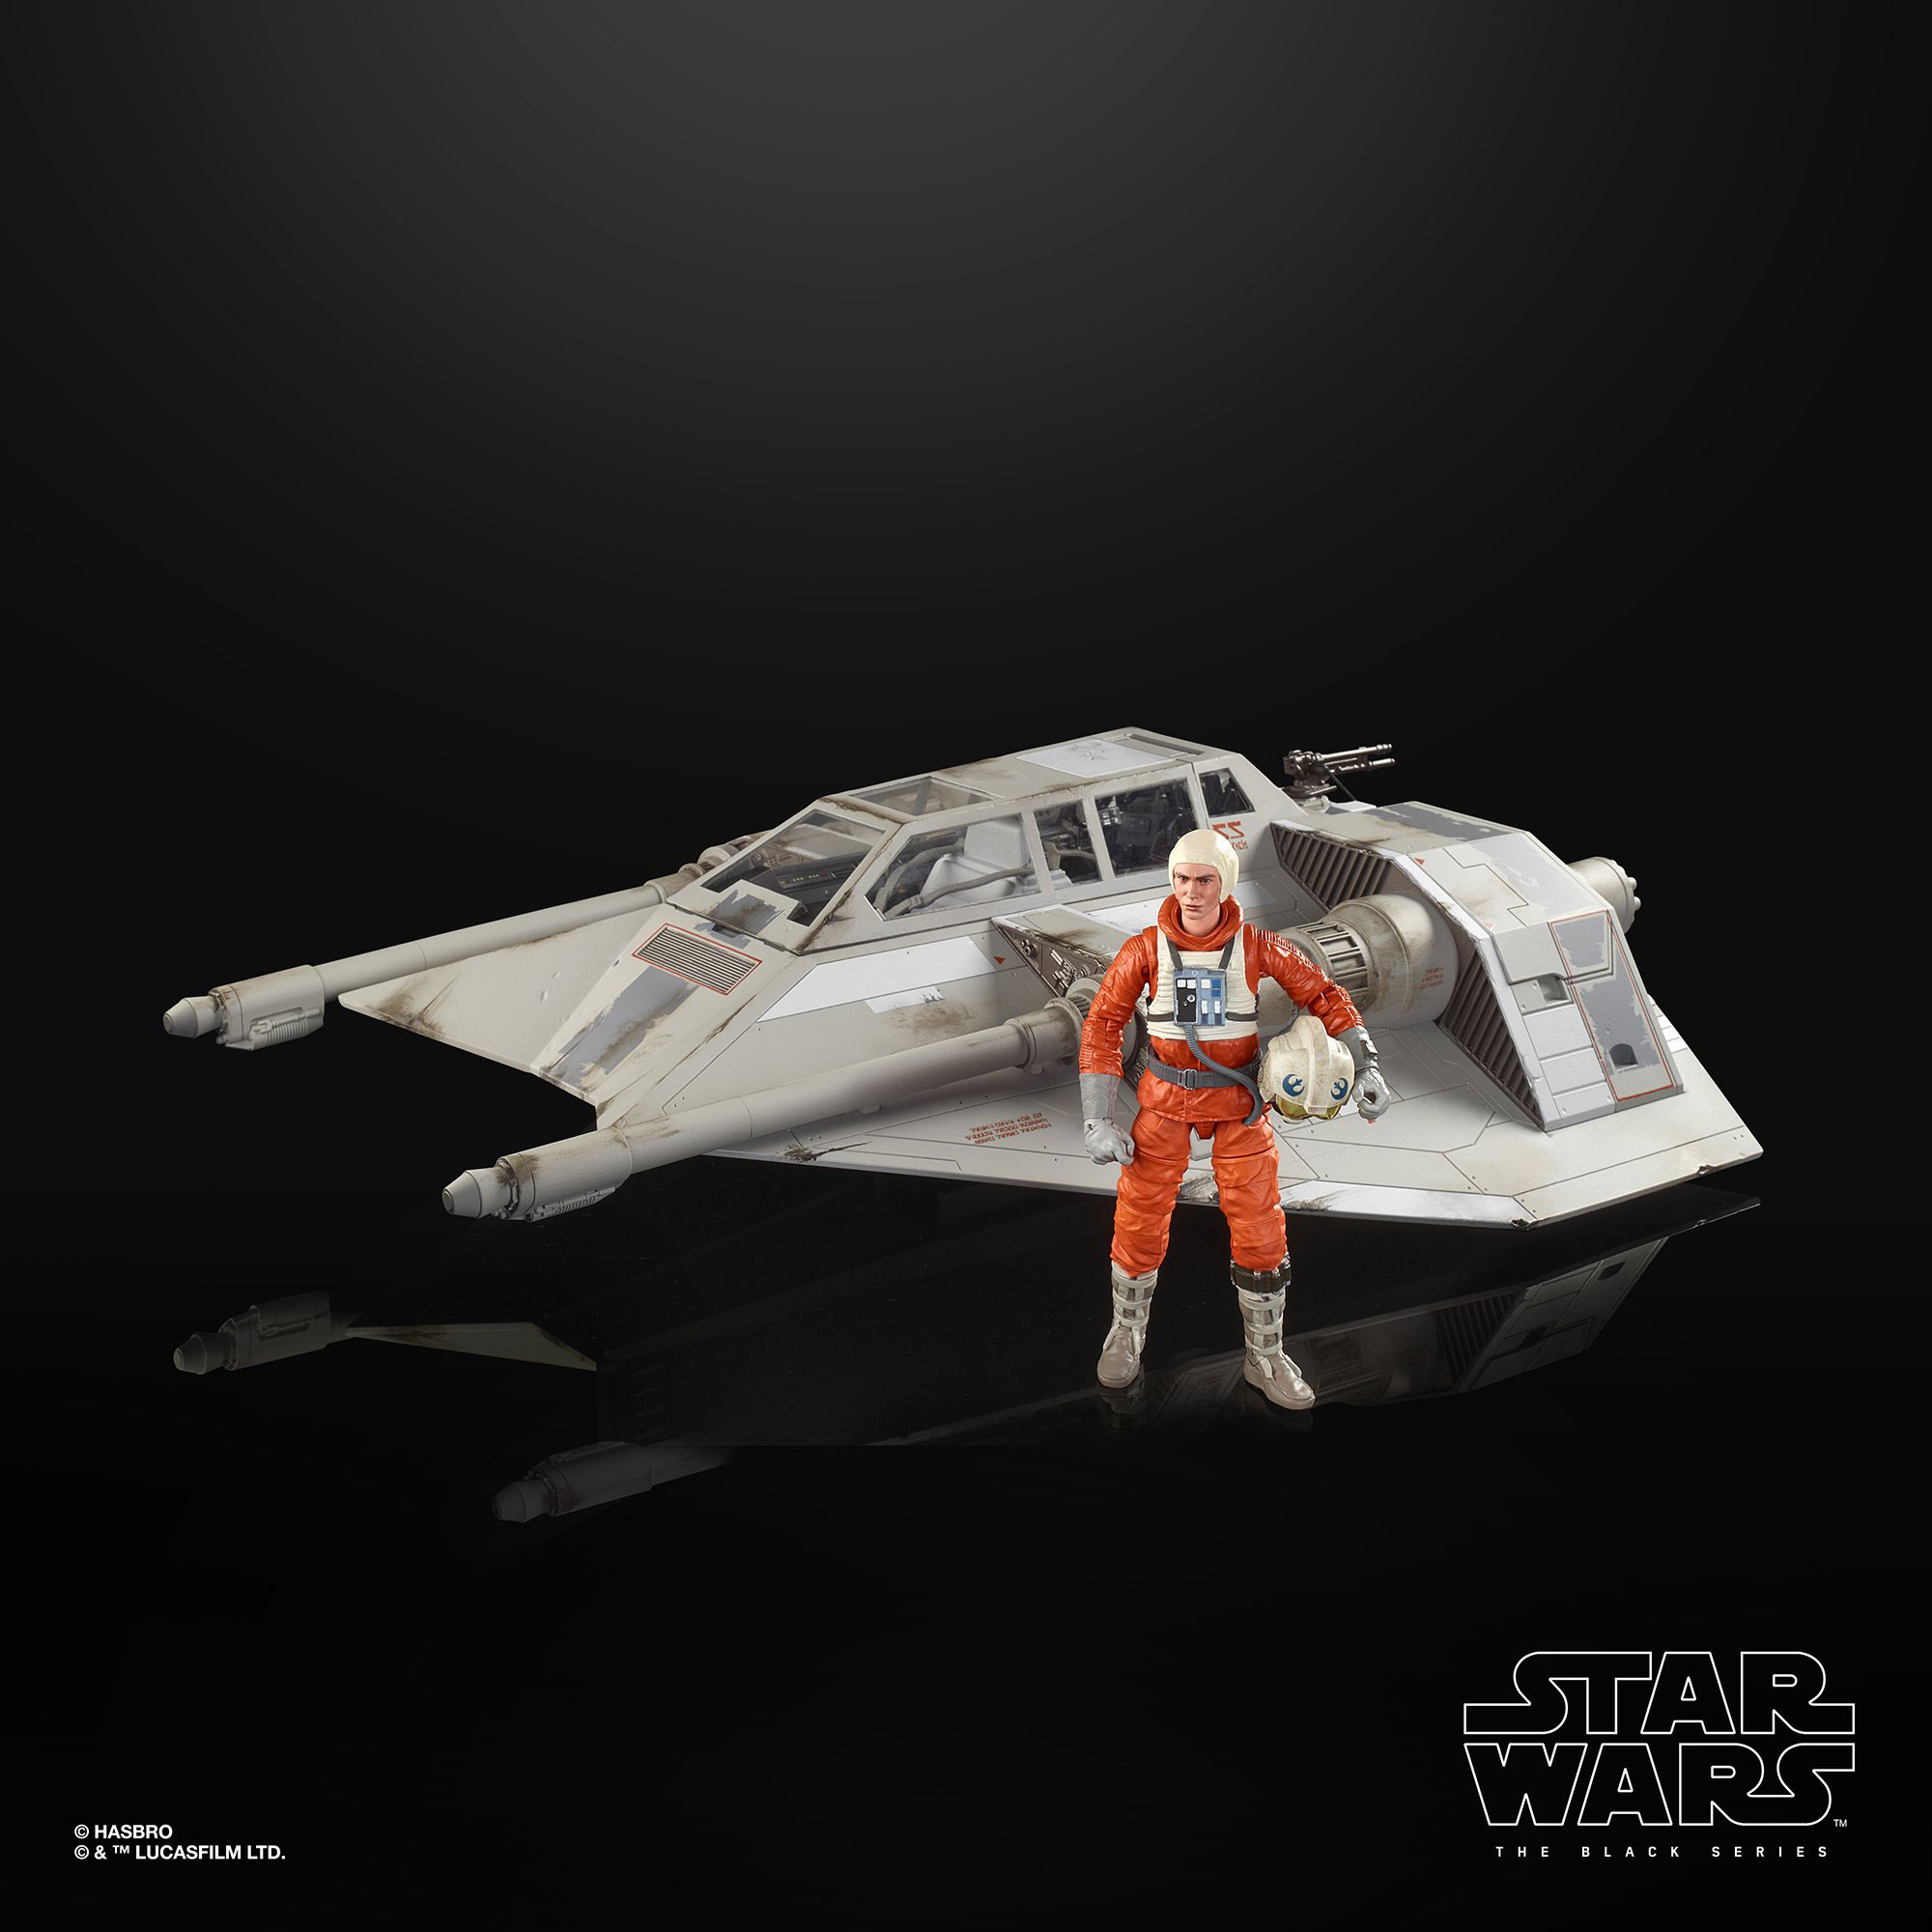 star-wars-black-series-snowspeeder-and-dak-ralter-figure-2